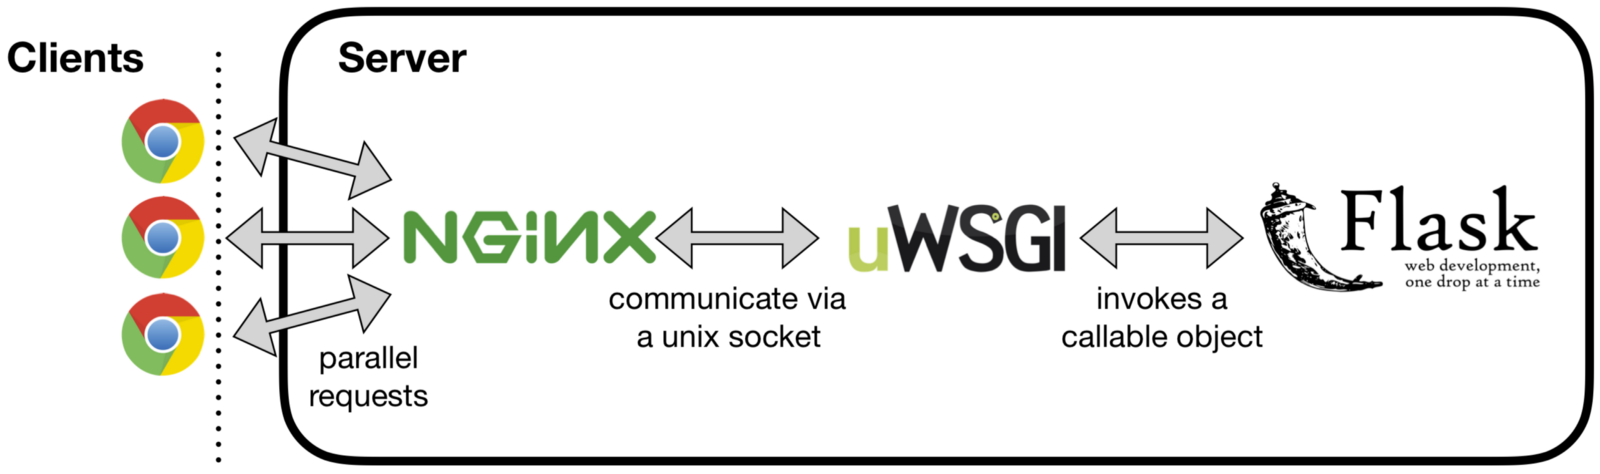 How to do rapid prototyping with Flask, uWSGI, NGINX, and